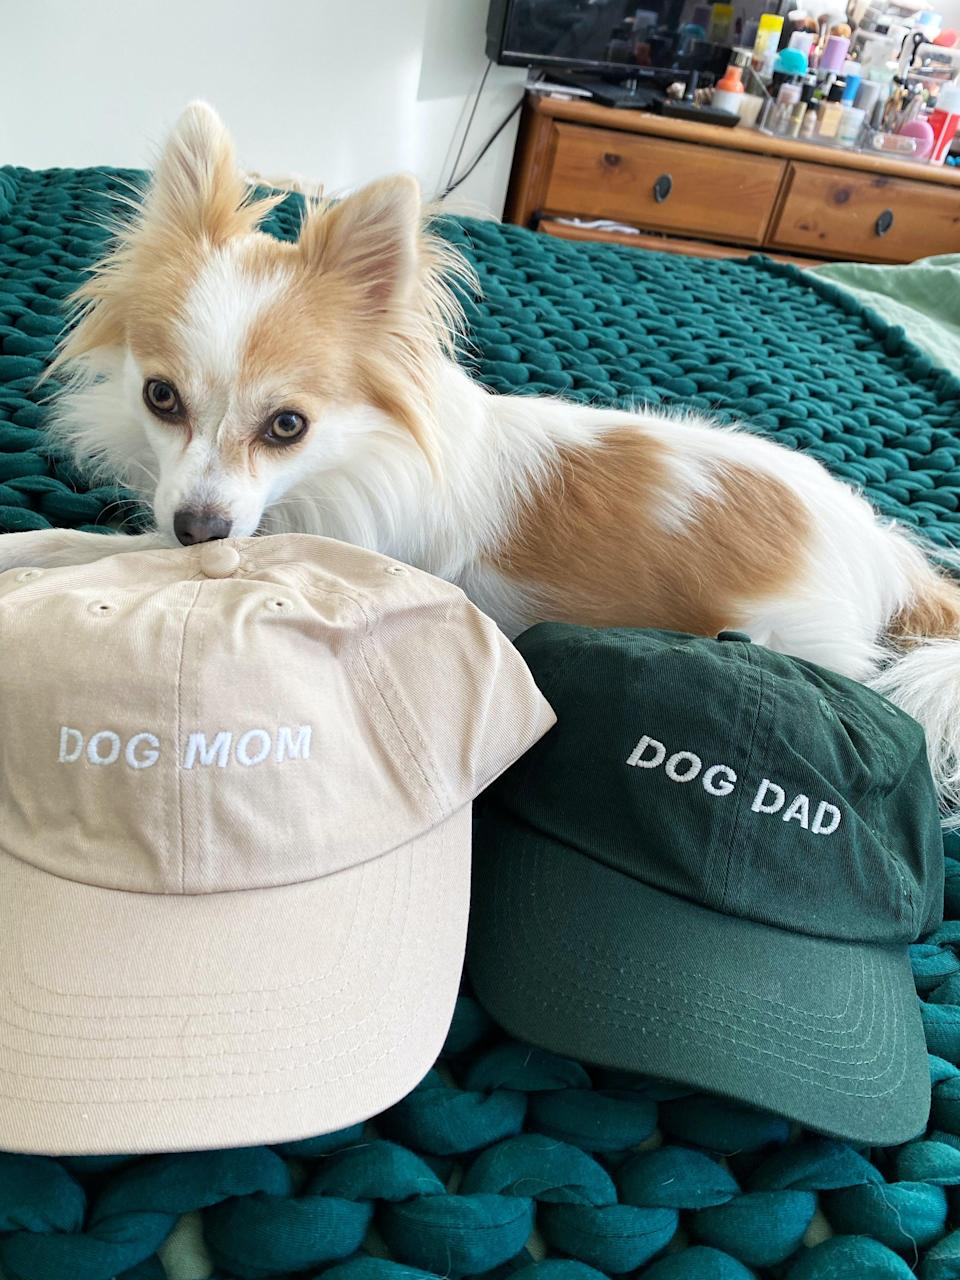 """<h2>Etsy Dog Mom Hat</h2><br>""""Speaking of dog stuff, my heart skipped a beat when I came across this Etsy gem. I loved how I could customize the hat and text color (I went with beige, to match my little one — it's clear he's responding to it), and I was even able to score it on sale. Plus, I couldn't miss the opportunity to surprise my boyfriend with a matching one in the coolest shade of forest green. """" <em>– Karina Hoshikawa, Beauty & Wellness Writer</em><br><br><em>Shop <strong><a href=""""https://www.etsy.com/shop/mallcore"""" rel=""""nofollow noopener"""" target=""""_blank"""" data-ylk=""""slk:mallcore"""" class=""""link rapid-noclick-resp"""">mallcore</a></strong></em><br><br><strong>mallcore</strong> Dog Mom Dad Hat, Dog Lover Gift, Dog Mom Gift, Dog Lover Baseball Hat, Pet Gifts, Pet Lovers Gift, Gift For Dog Lover, $, available at <a href=""""https://go.skimresources.com/?id=30283X879131&url=https%3A%2F%2Fwww.etsy.com%2Flisting%2F607202809%2Fdog-mom-dad-hat-dog-lover-gift-dog-mom"""" rel=""""nofollow noopener"""" target=""""_blank"""" data-ylk=""""slk:Etsy"""" class=""""link rapid-noclick-resp"""">Etsy</a>"""